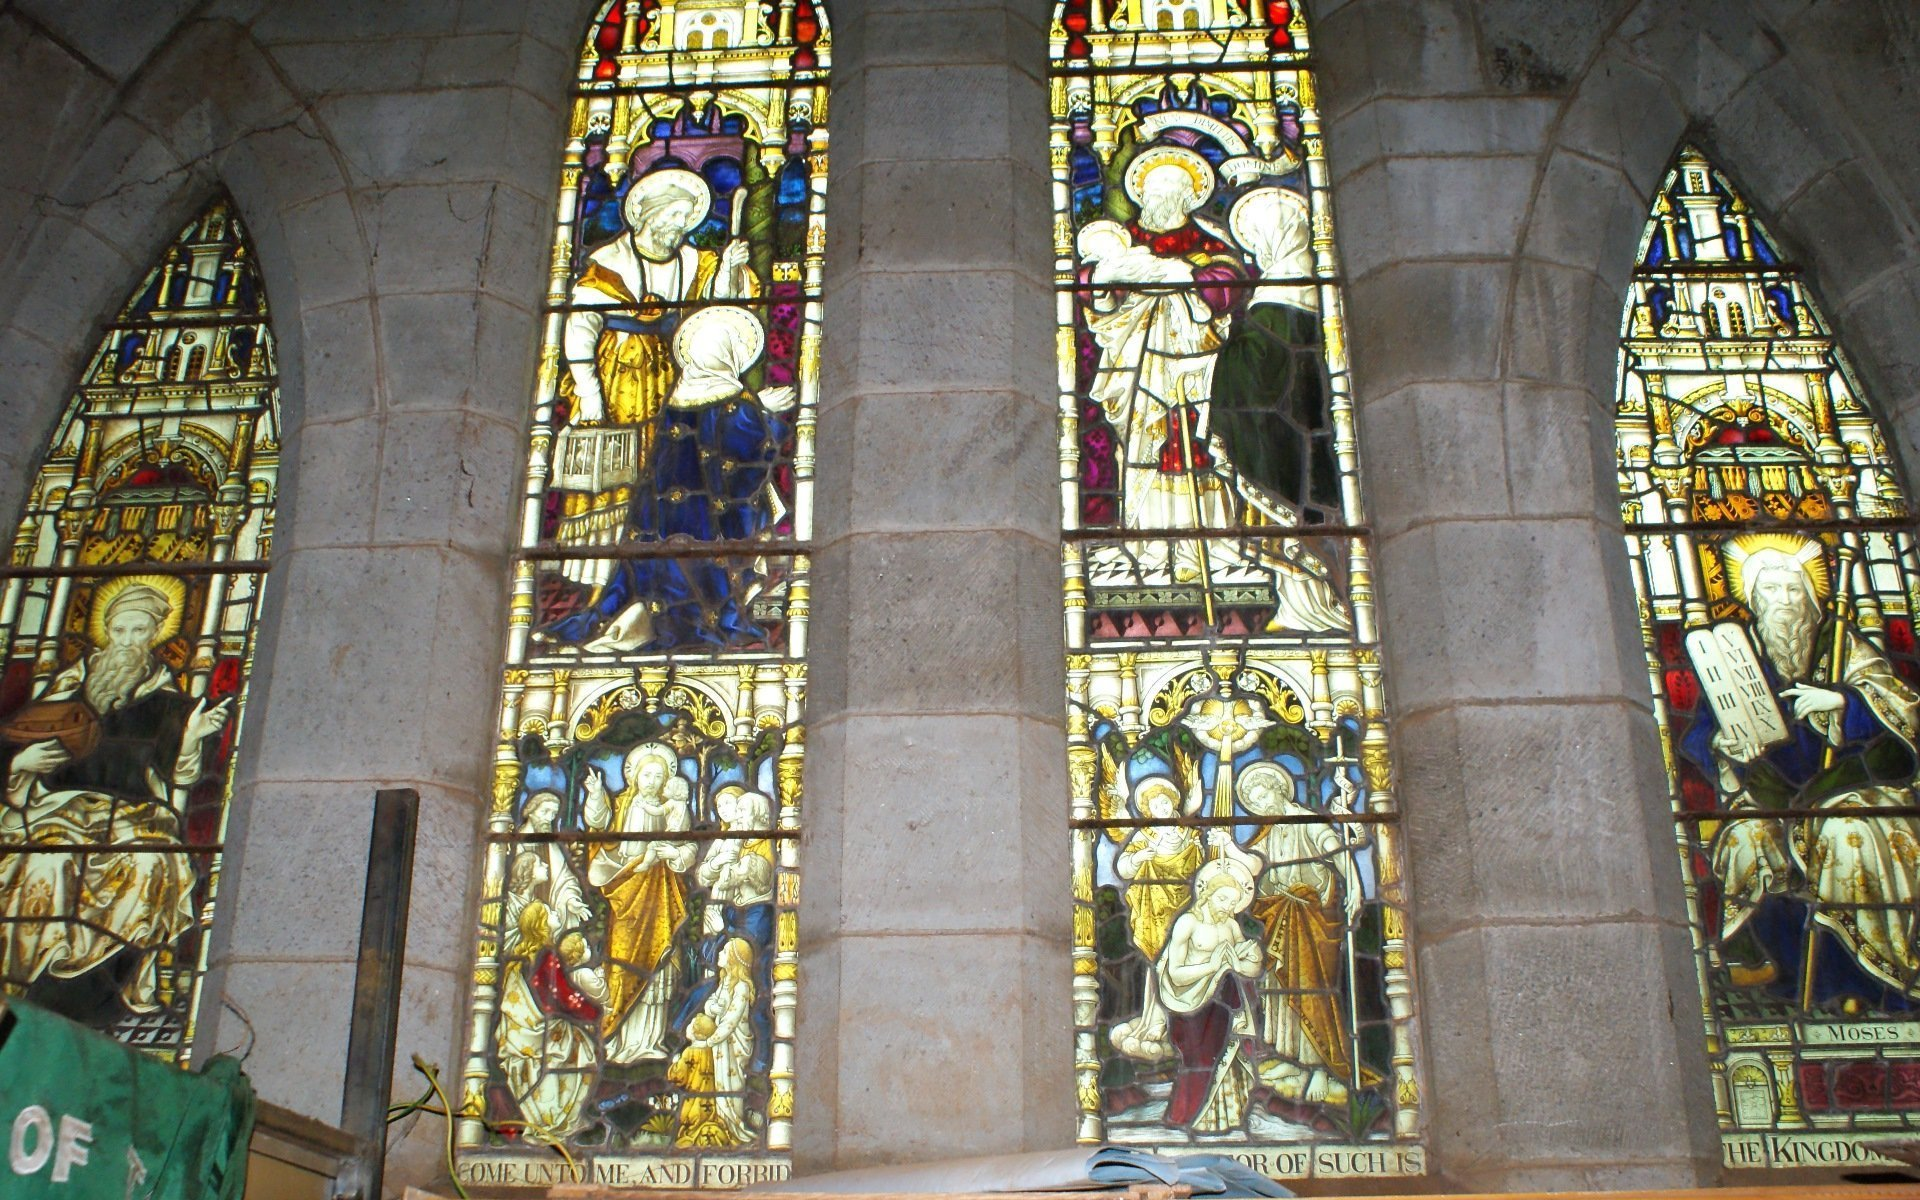 The art in the 6 windows represented nothing more than the armoury used in spiritual warfare according to Ephesians 6:10-18.